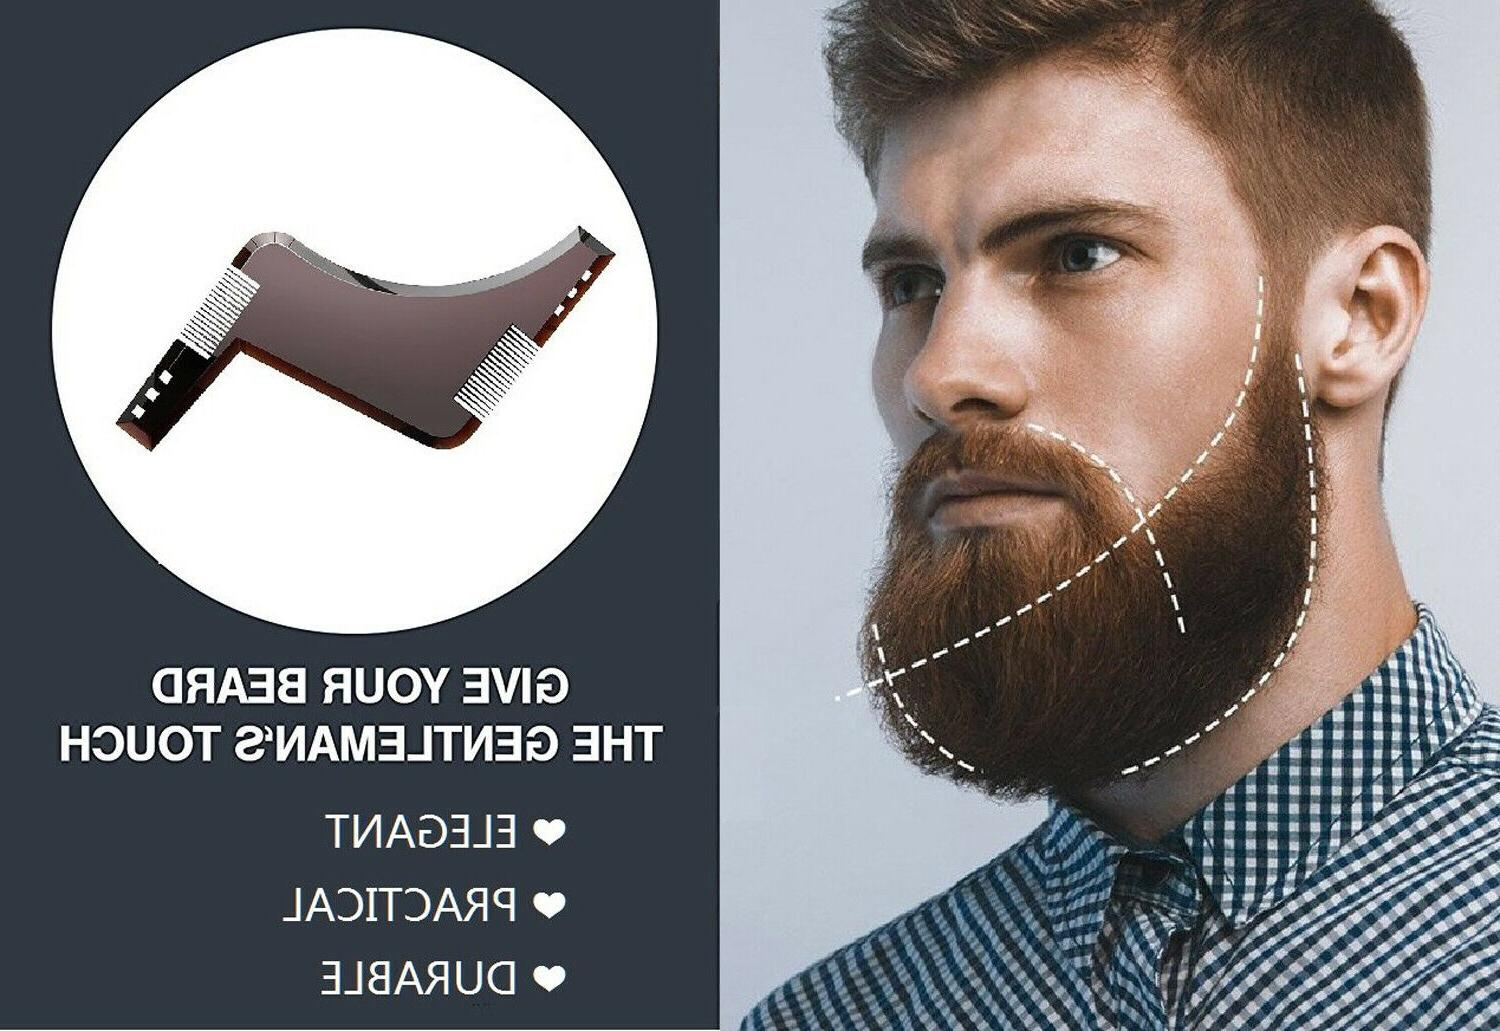 Beard Trimmer Guide Hair Tool Shaping